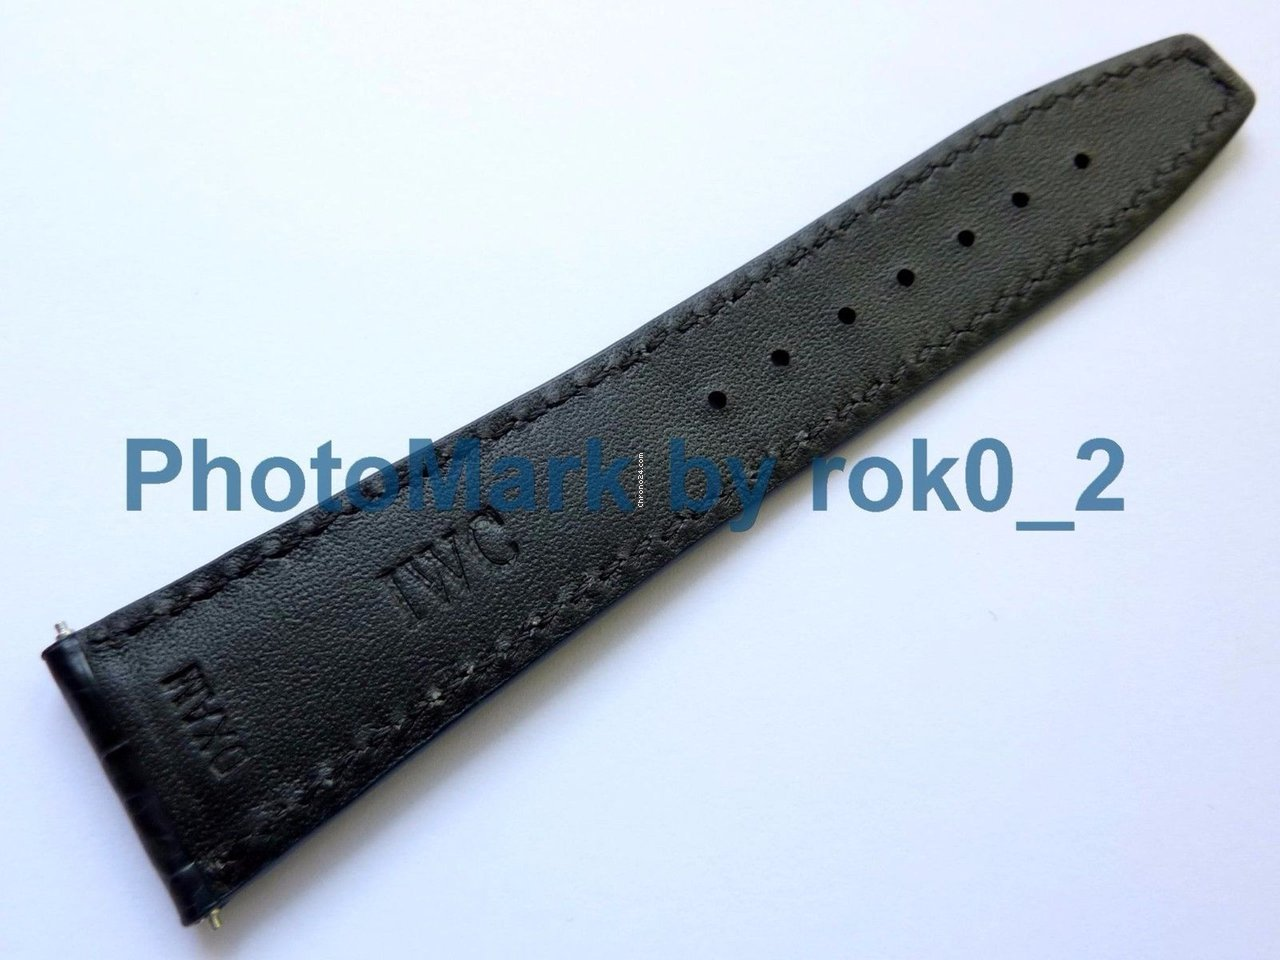 e188d1866 IWC Midnight Blue Alligator Crocodile Watch Strap Band 22mm for $285 for  sale from a Trusted Seller on Chrono24